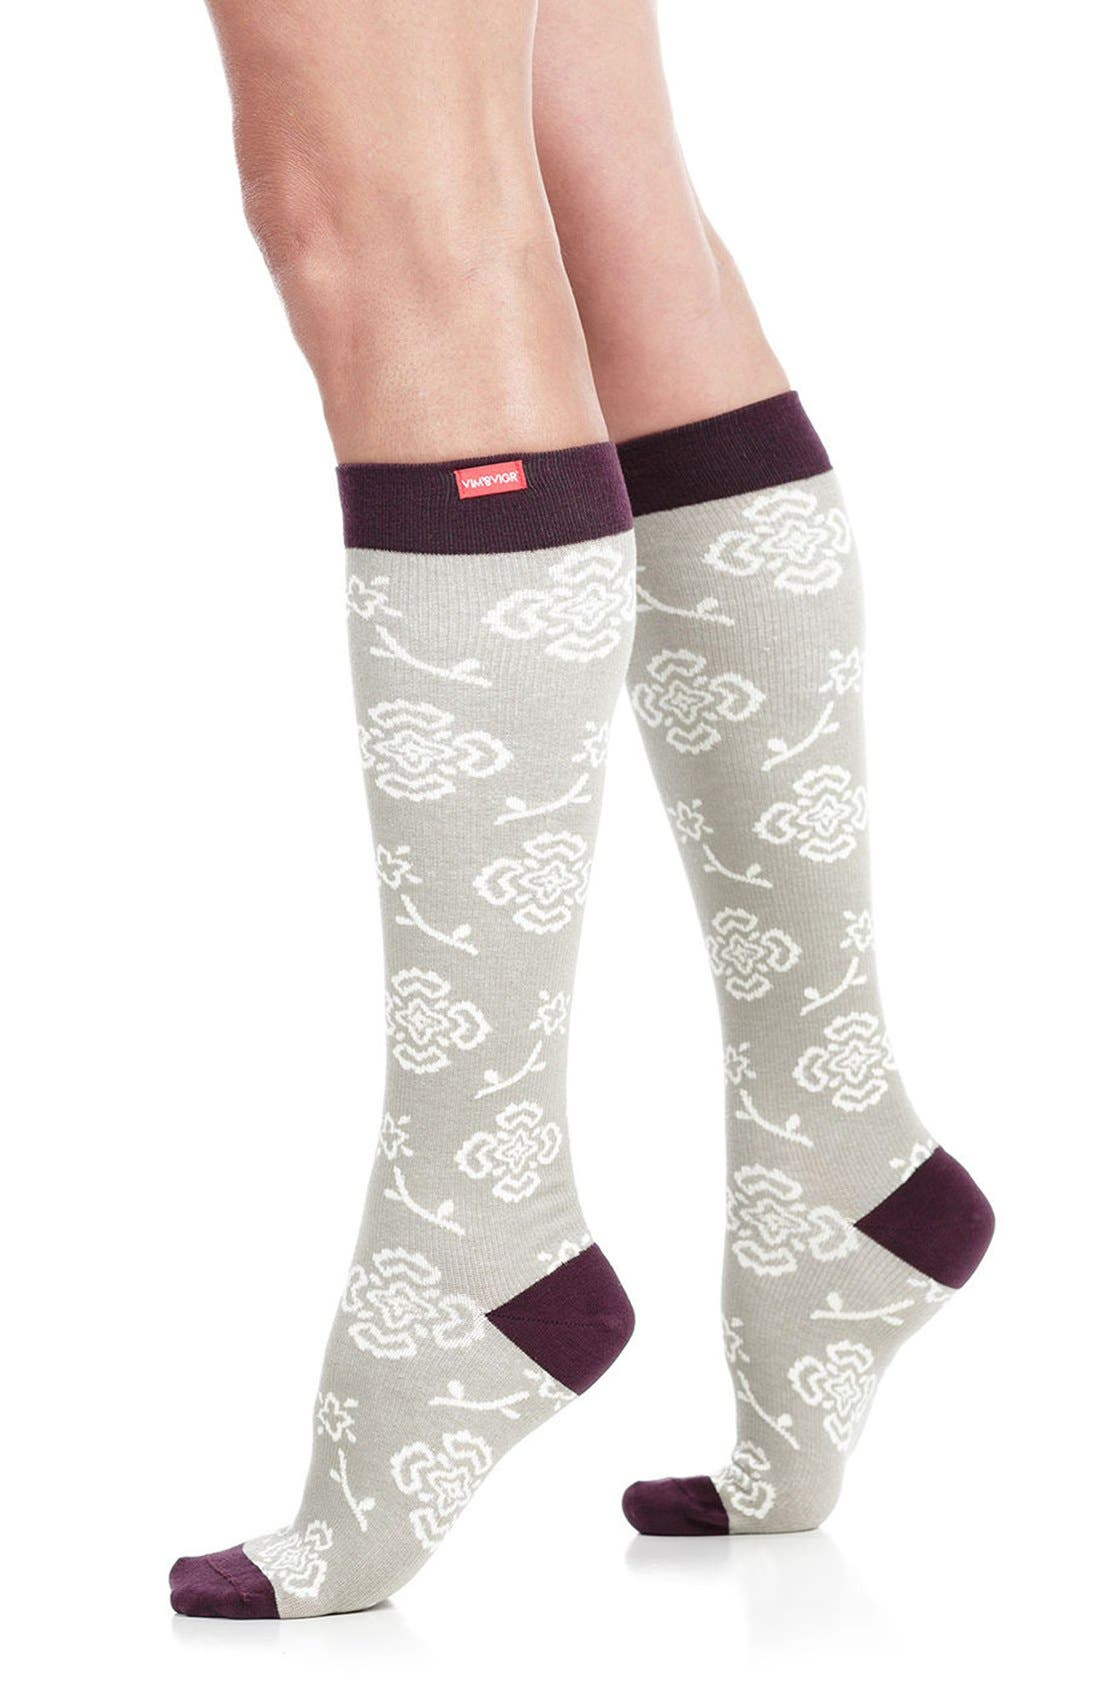 Queen's Floral Compression Trouser Socks,                         Main,                         color, 020